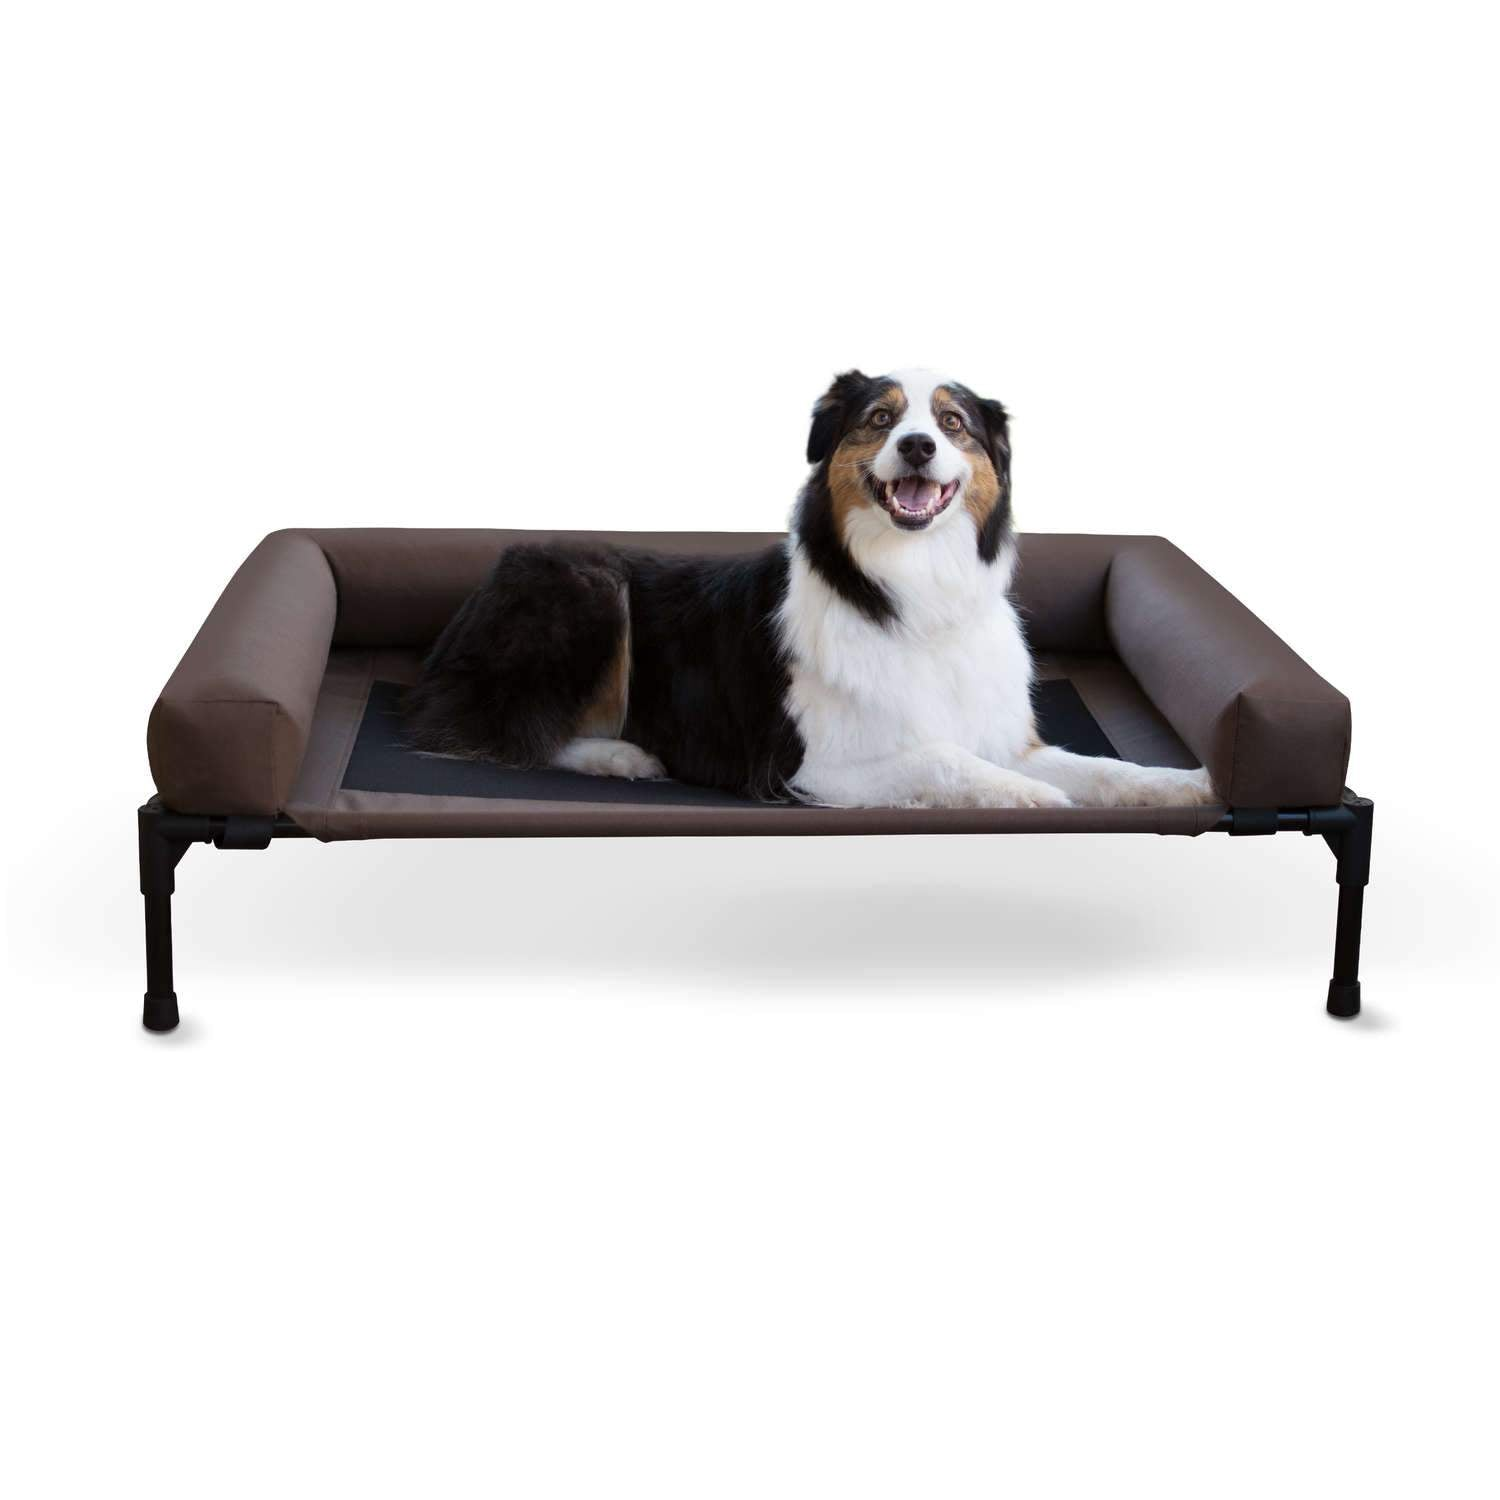 K&H Pet Products Original Bolster Pet Cot Large Chocolate 30″ x 42″ x 7″